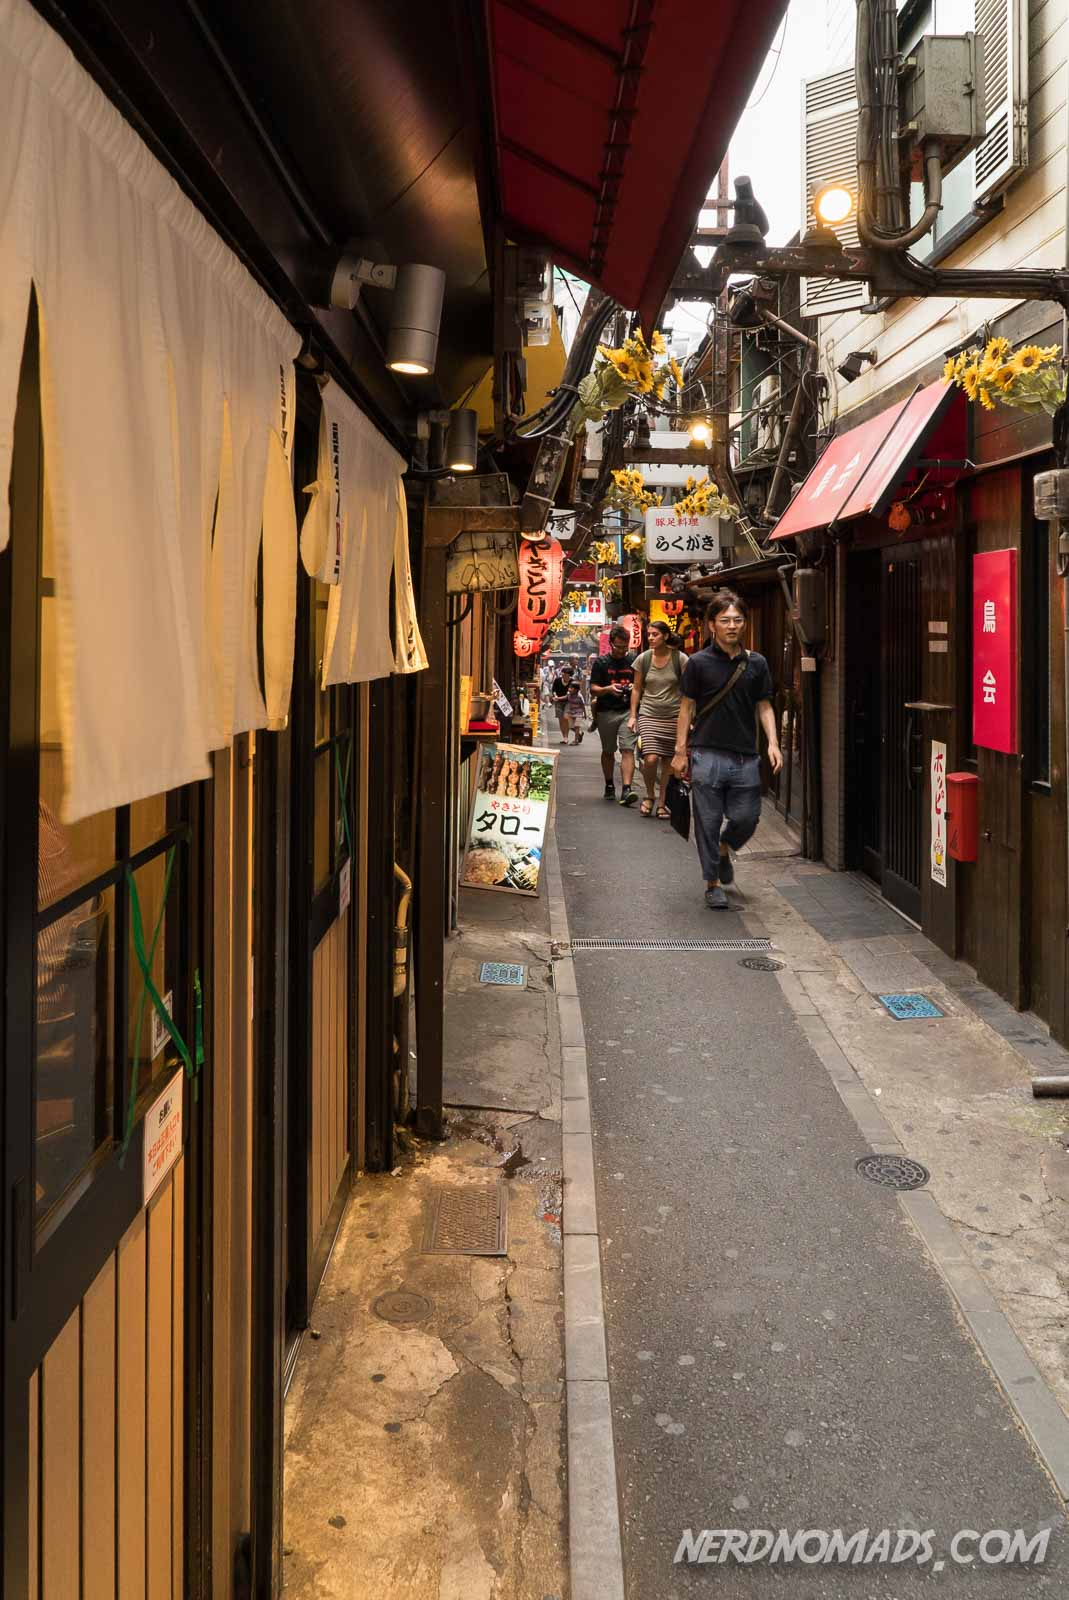 Where To Stay In Tokyo Our Favourite Areas Amp Hotels In Tokyo Nerd Nomads